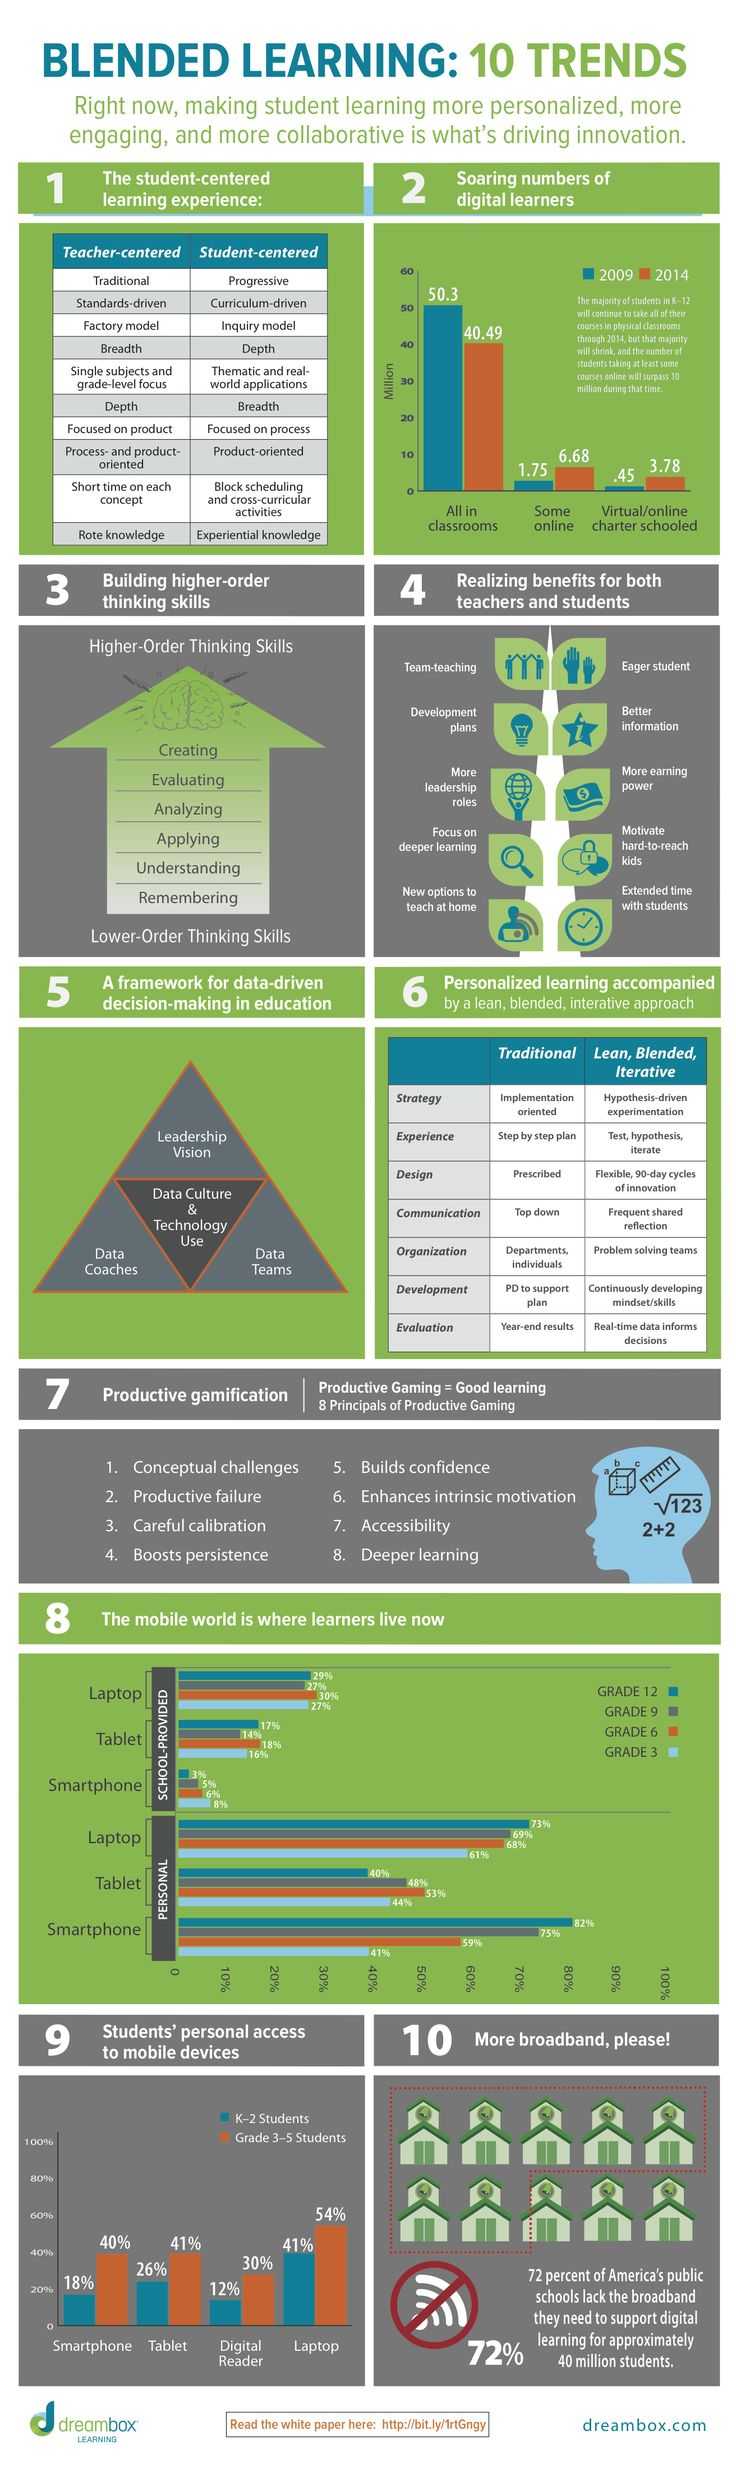 10 Blended Learning Trends Infographic - http://elearninginfographics.com/10-blended-learning-trends-infographic/